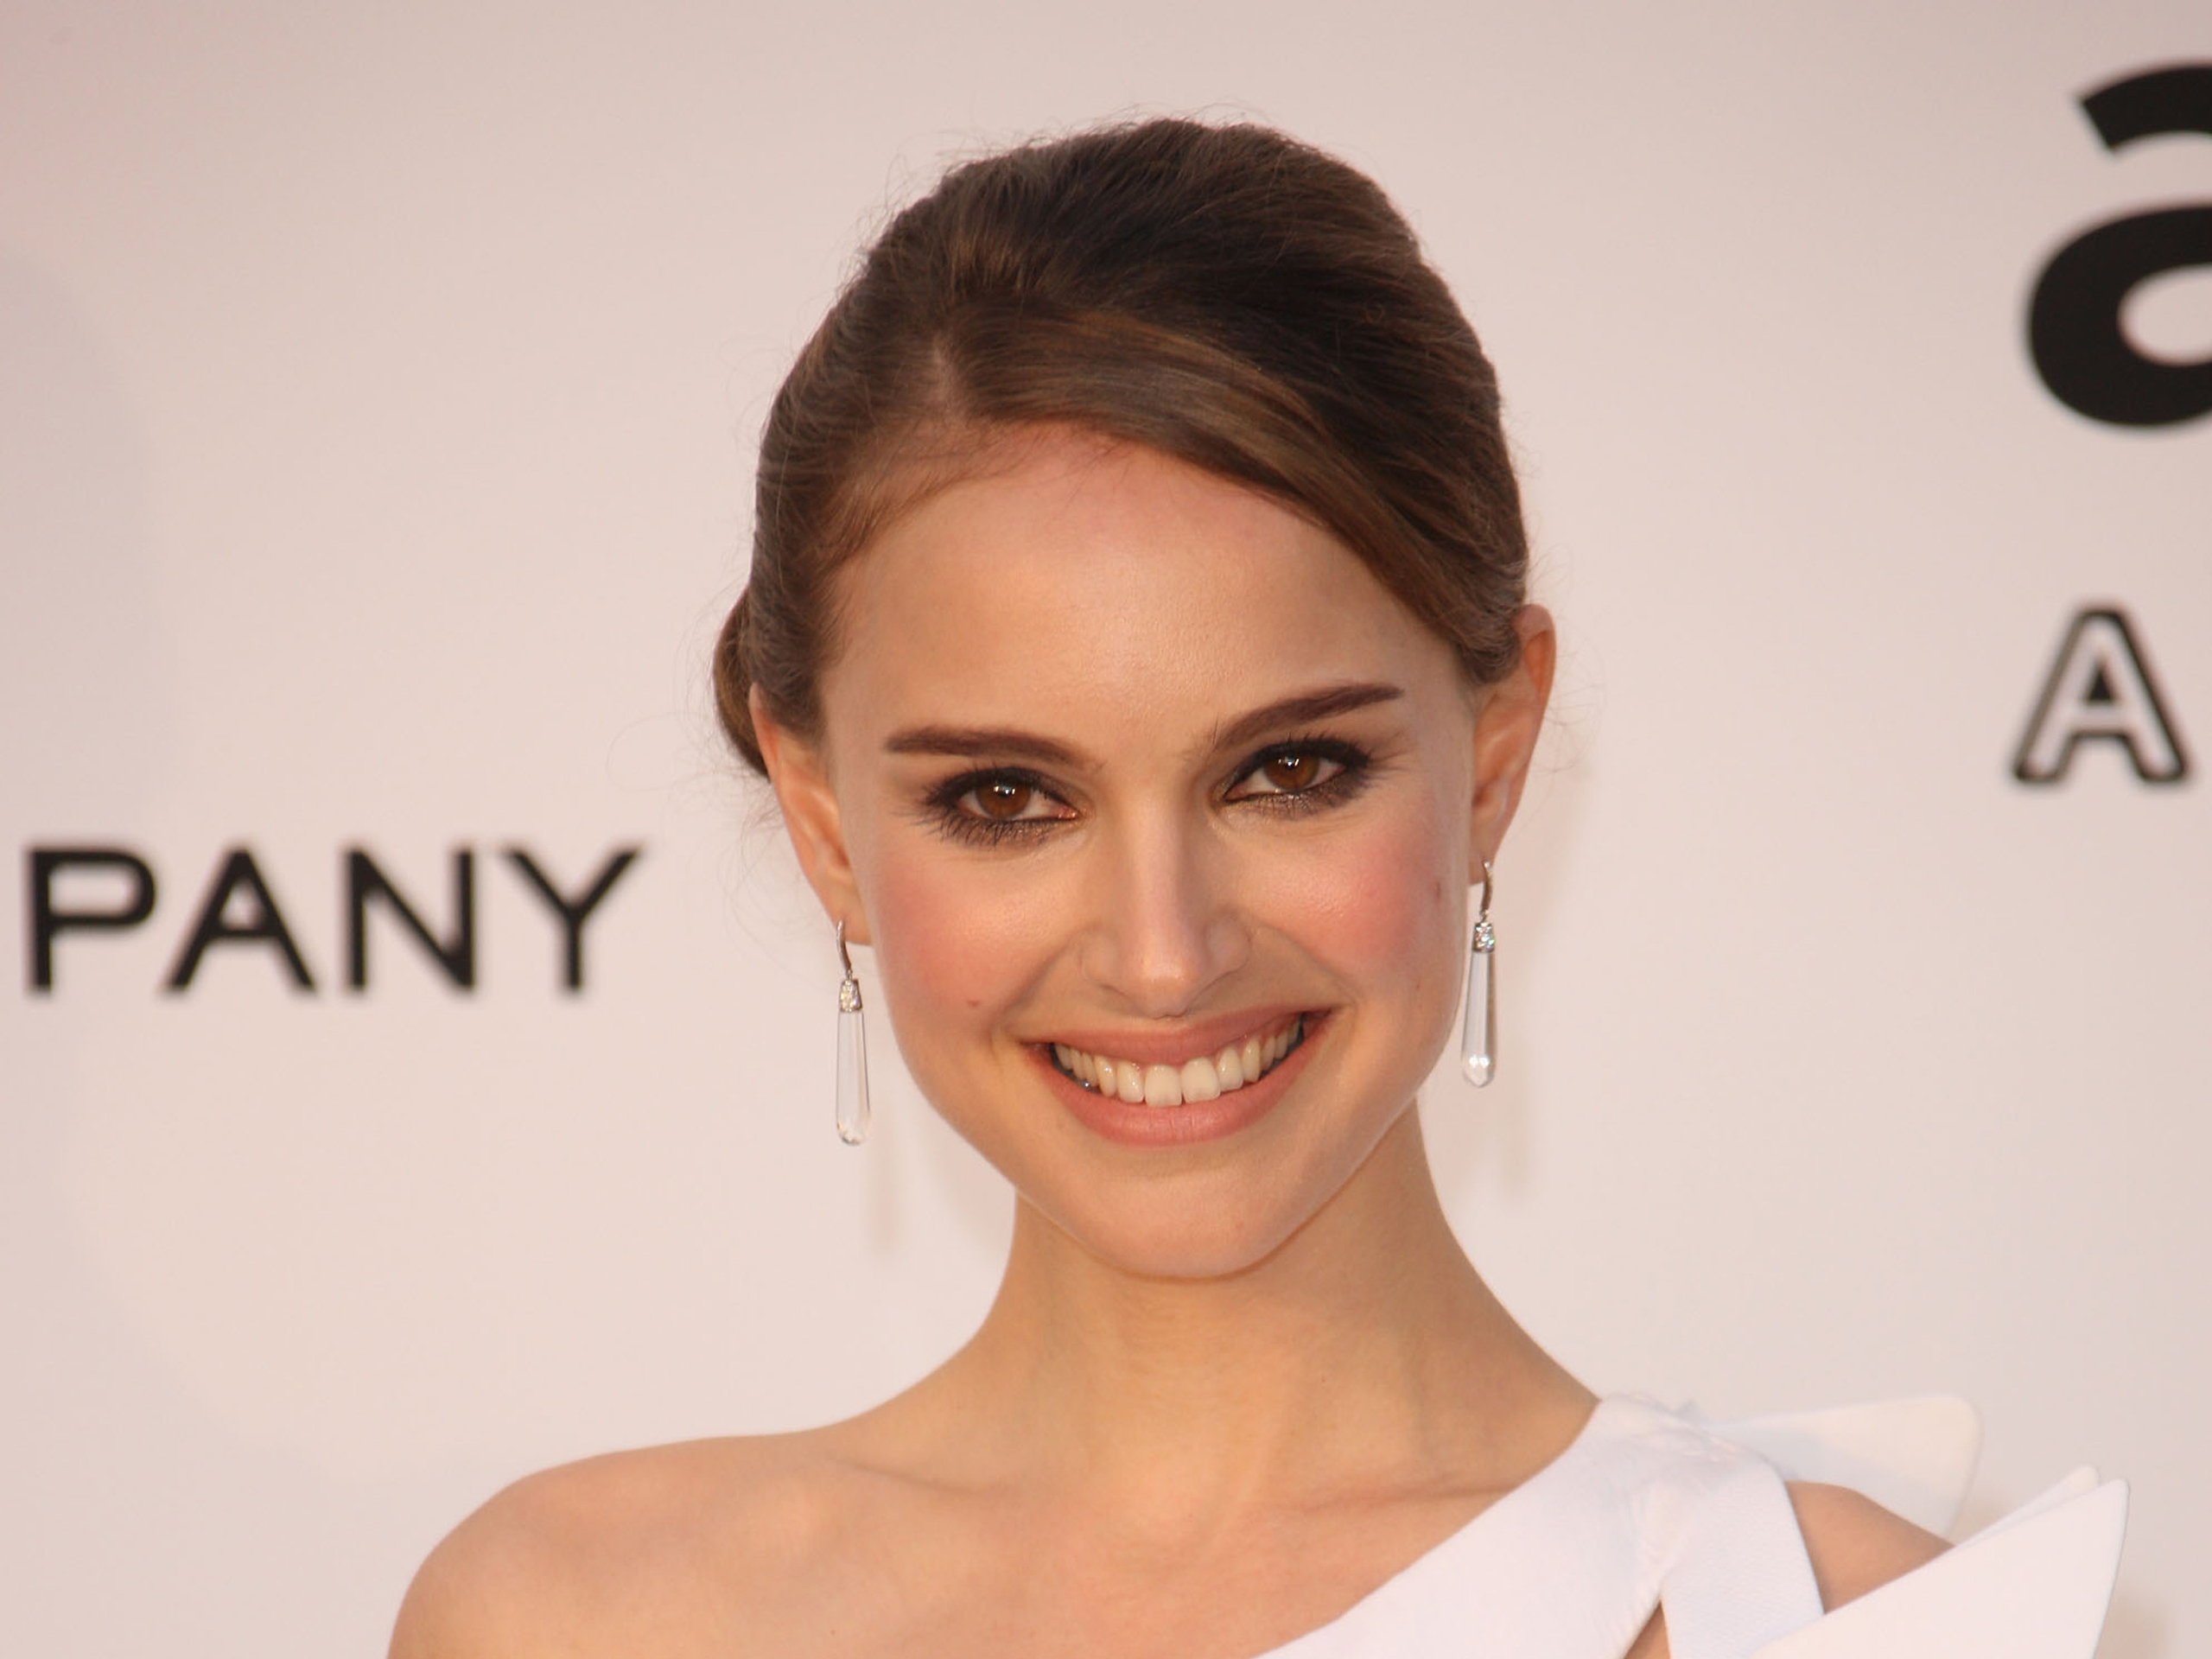 hot natalie portman free hd photos awesome pics download hd